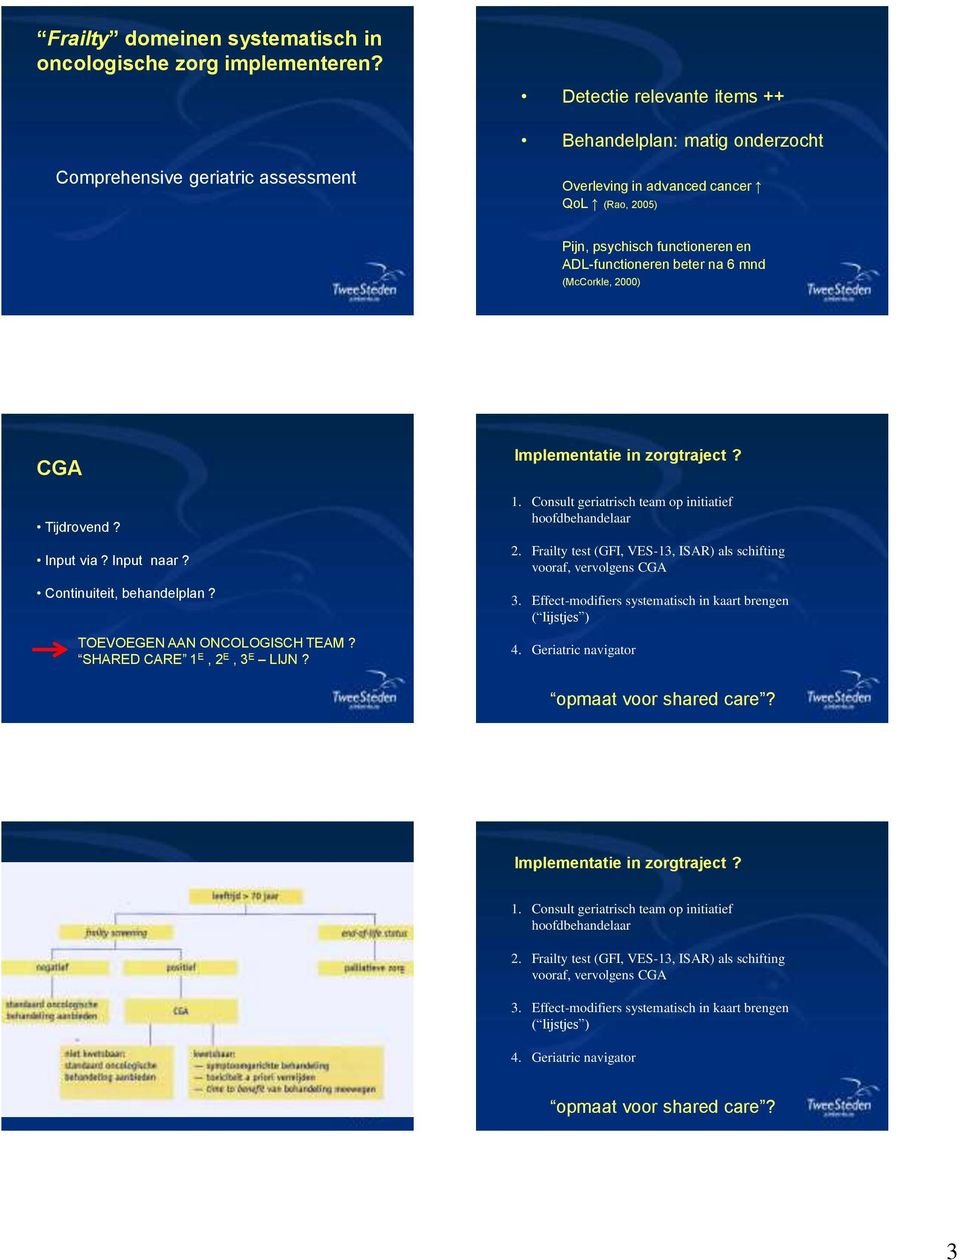 mnd (McCorkle, 2000) CGA Tijdrovend? Input via? Input naar? Continuiteit, behandelplan? TOEVOEGEN AAN ONCOLOGISCH TEAM? SHARED CARE 1 E, 2 E, 3 E LIJN? Implementatie in zorgtraject? 1. Consult geriatrisch team op initiatief hoofdbehandelaar 2.